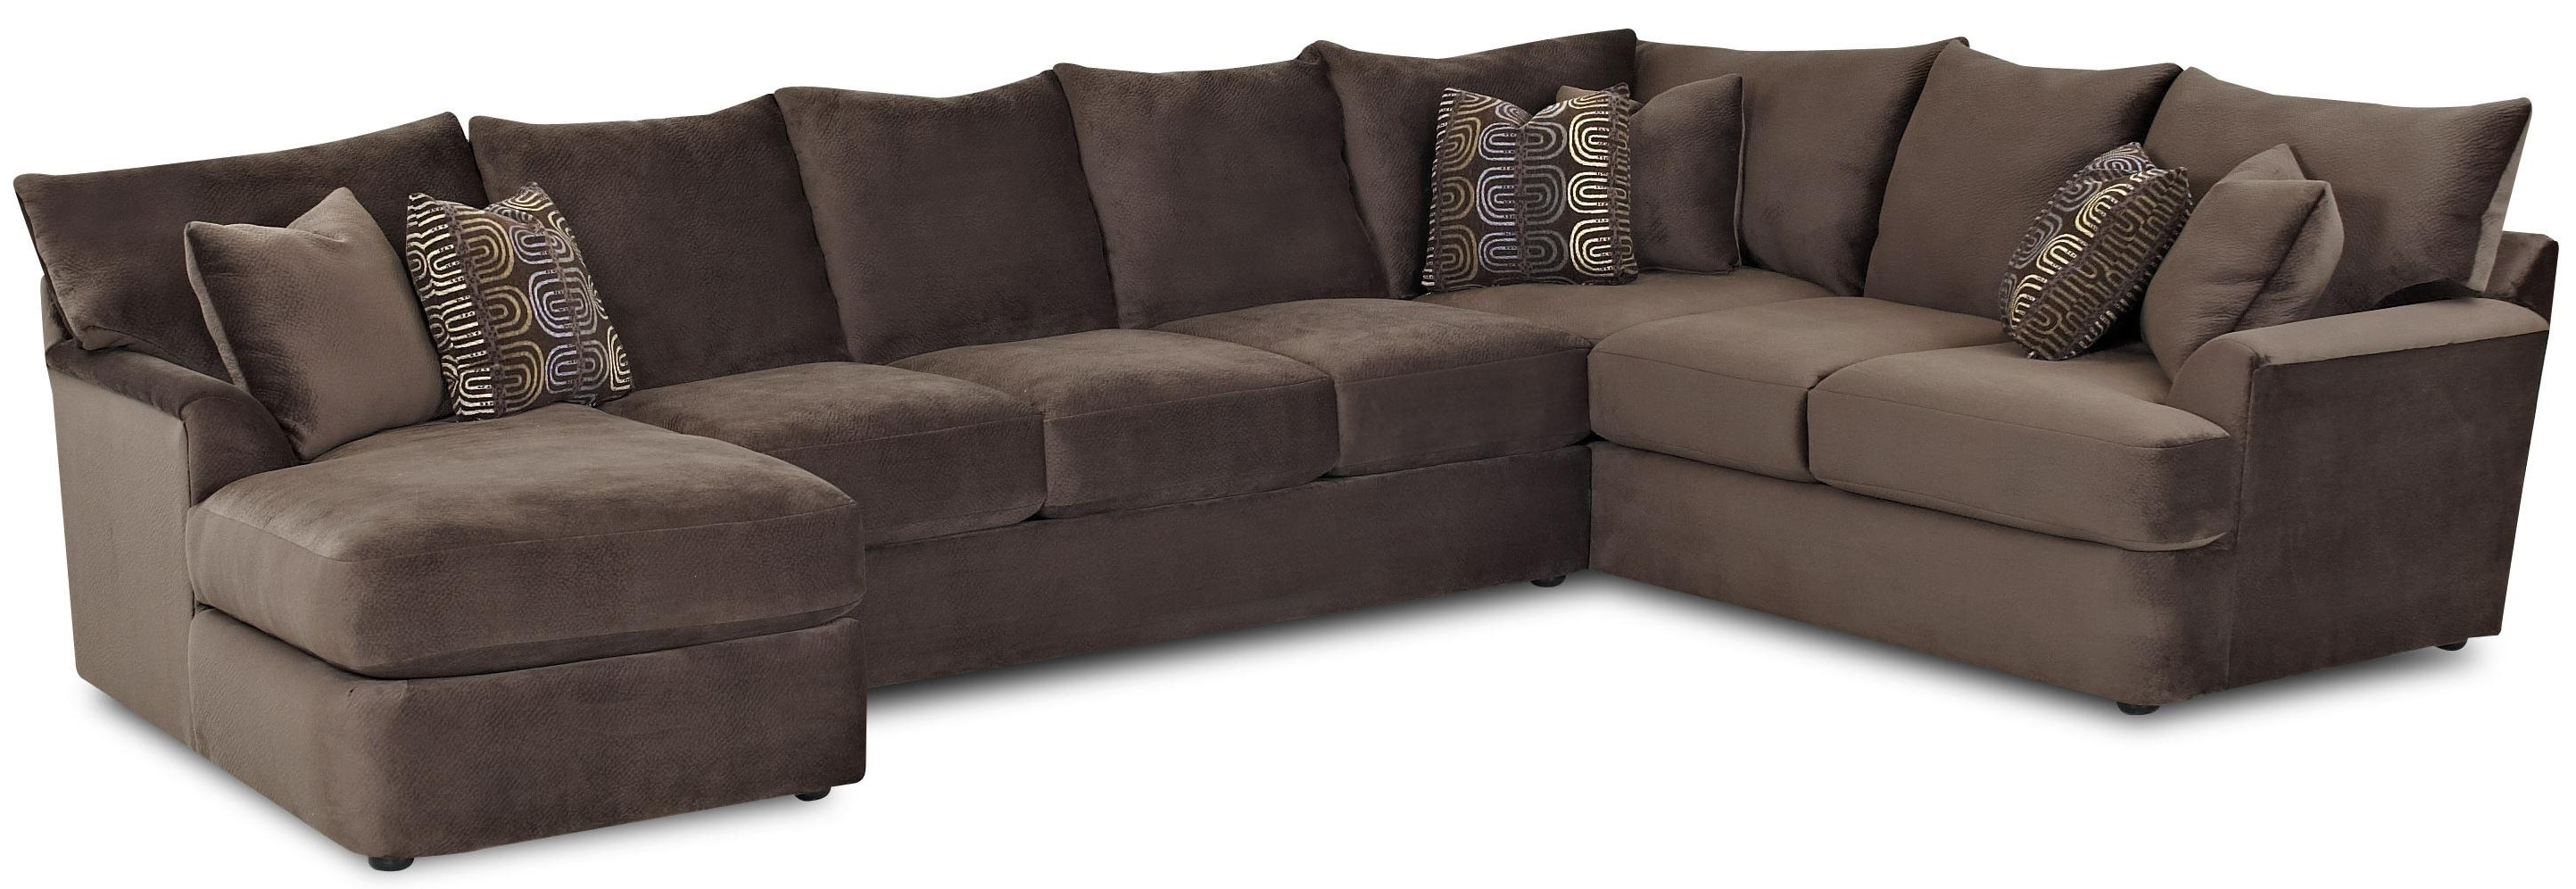 Most Recently Released Couch: Astonishing Wide Couches Oversized Sectional Couches, Wide For Wide Sofa Chairs (View 10 of 15)